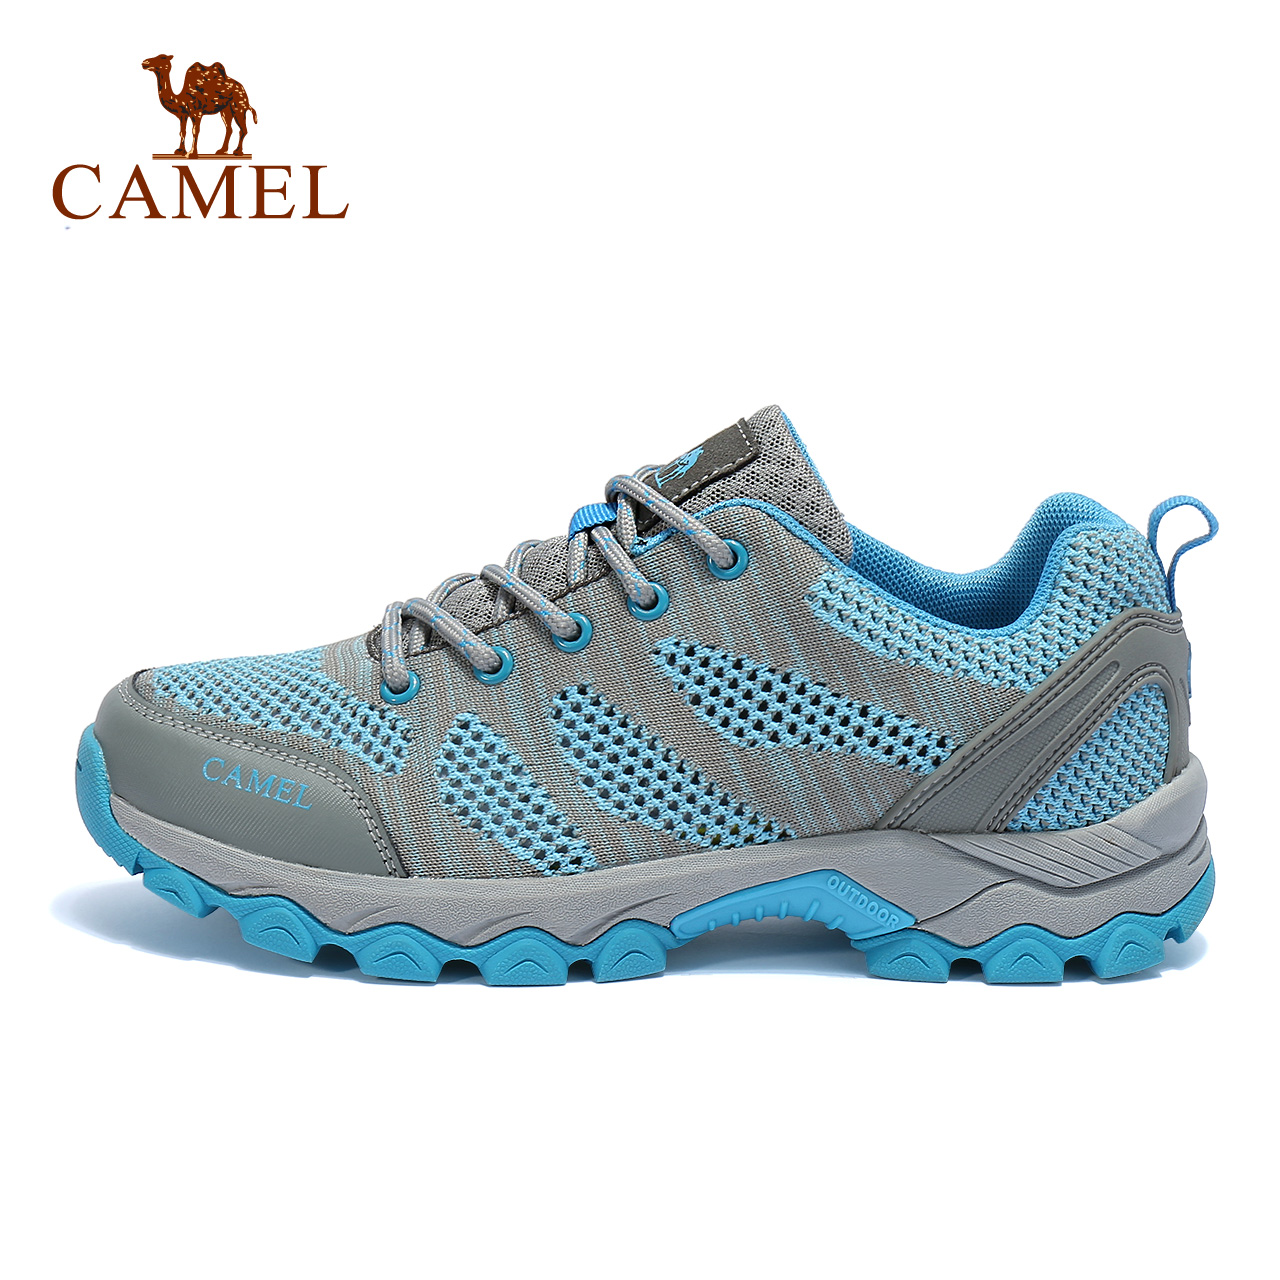 [Broken code clearance] camel outdoor walking shoes female models non-slip shock absorption breathable comfort low to help climbing net shoes